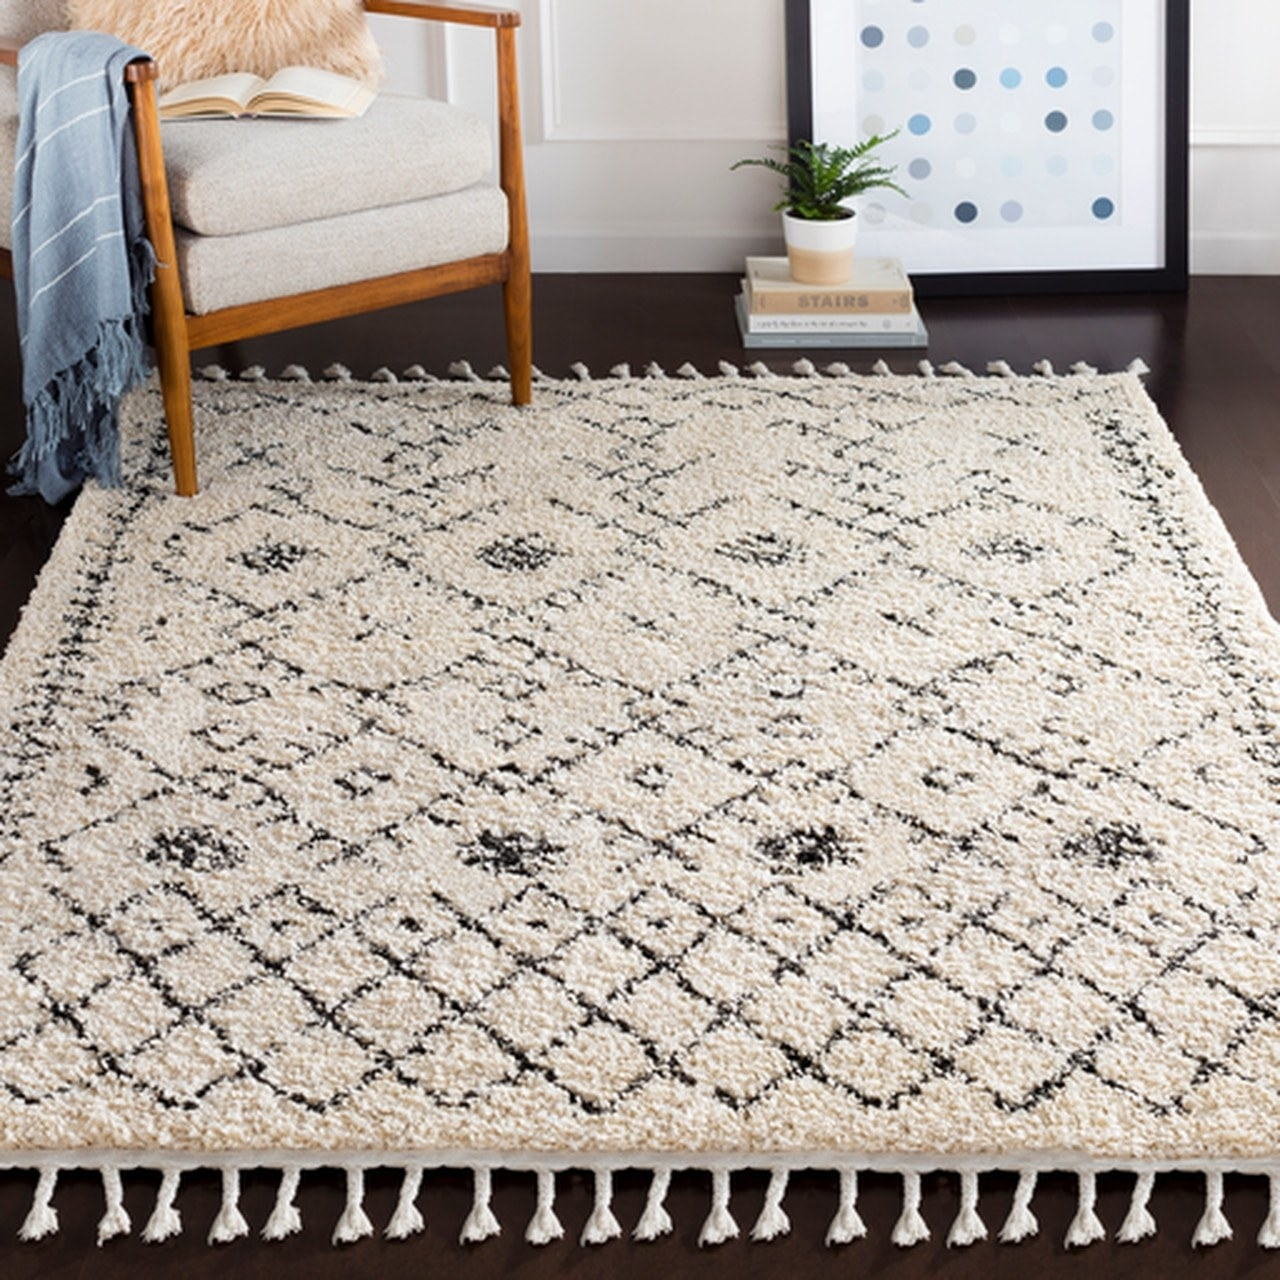 The rectangular rug with fringe on the end in white shag with a diamond pattern in black